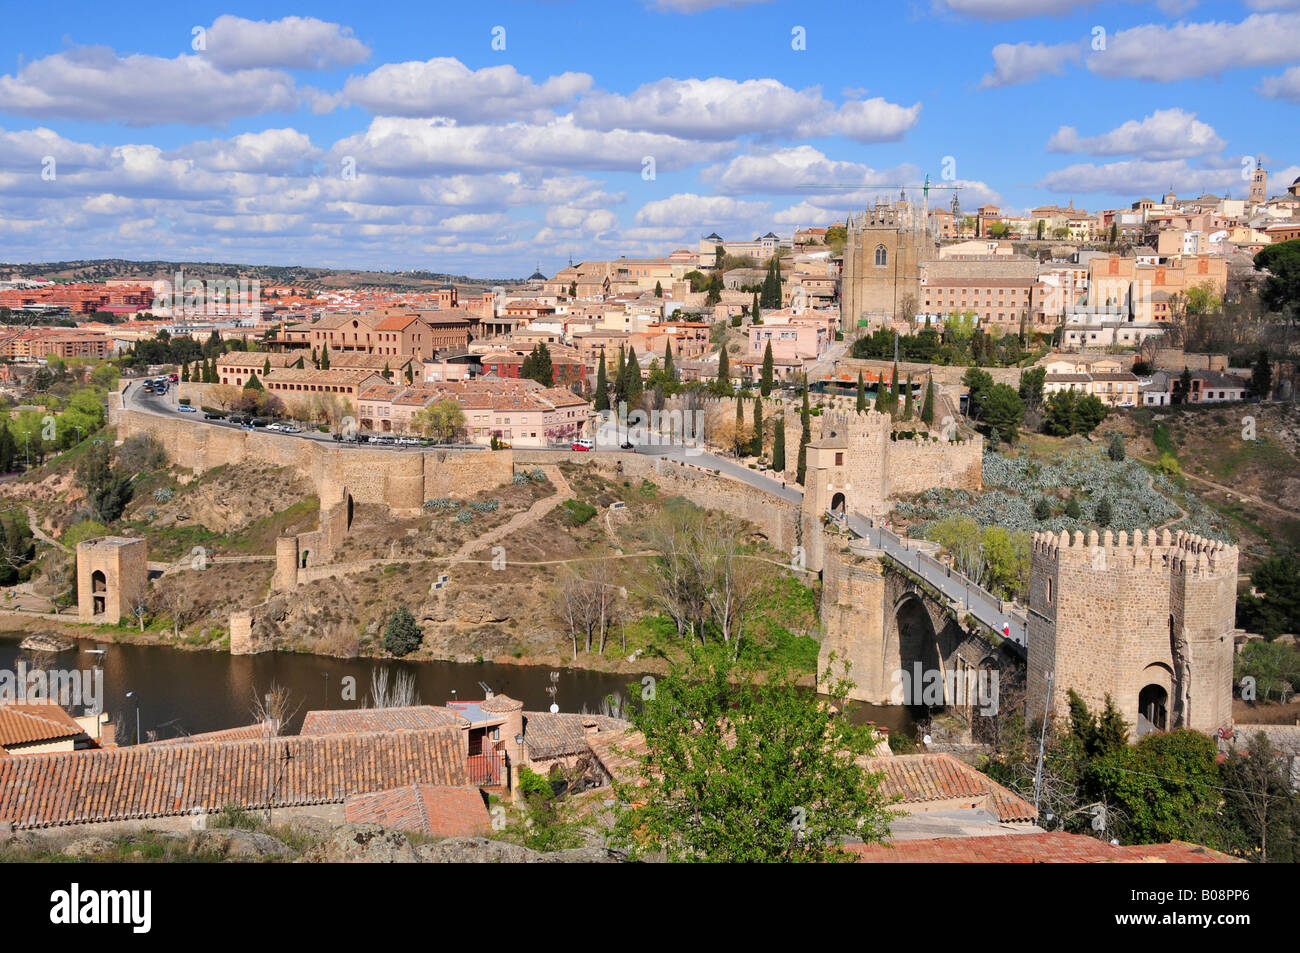 View of the old part of Toledo and the Tajo River, Puente de San Martín in the foreground, Toledo, Spain Stock Photo